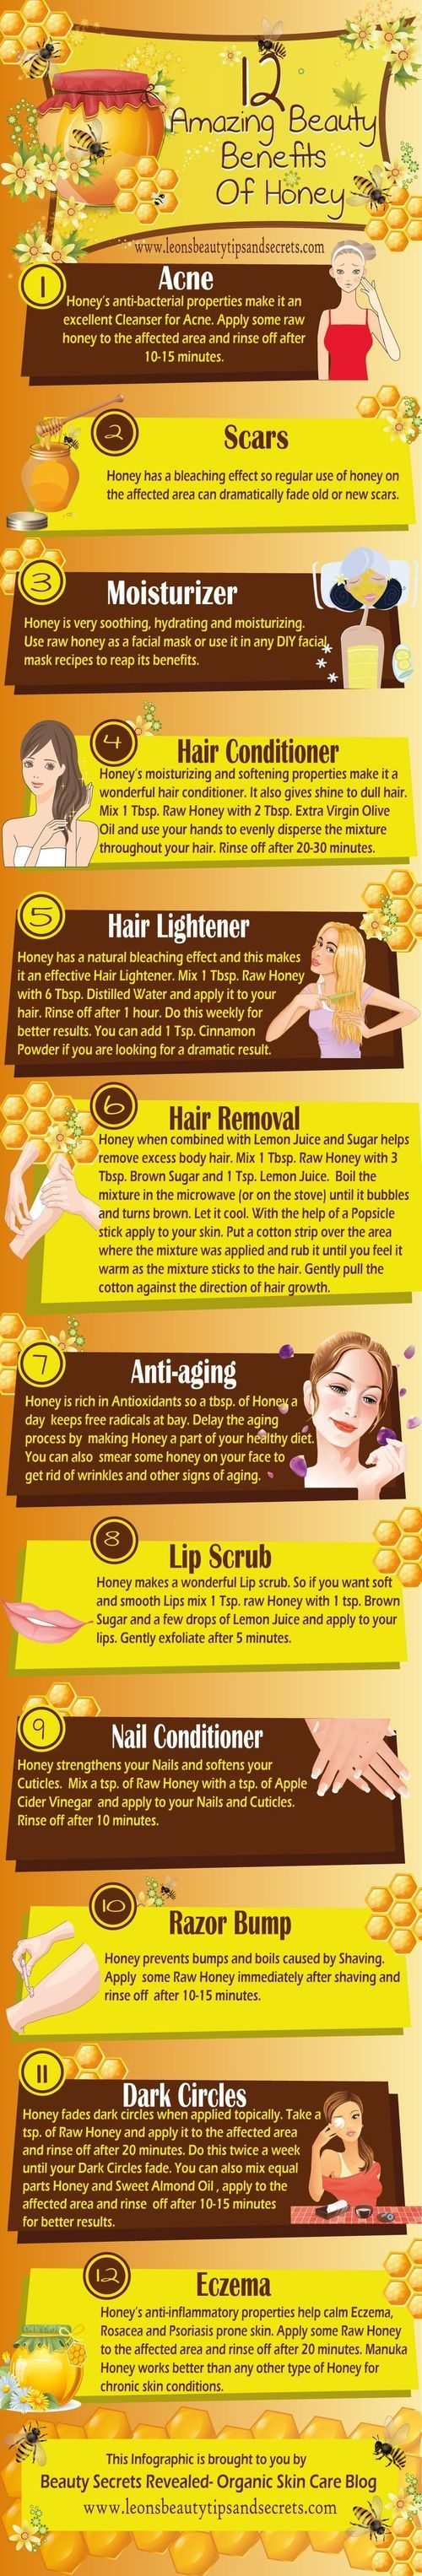 Benefits of Honey! #Beauty #skinCare